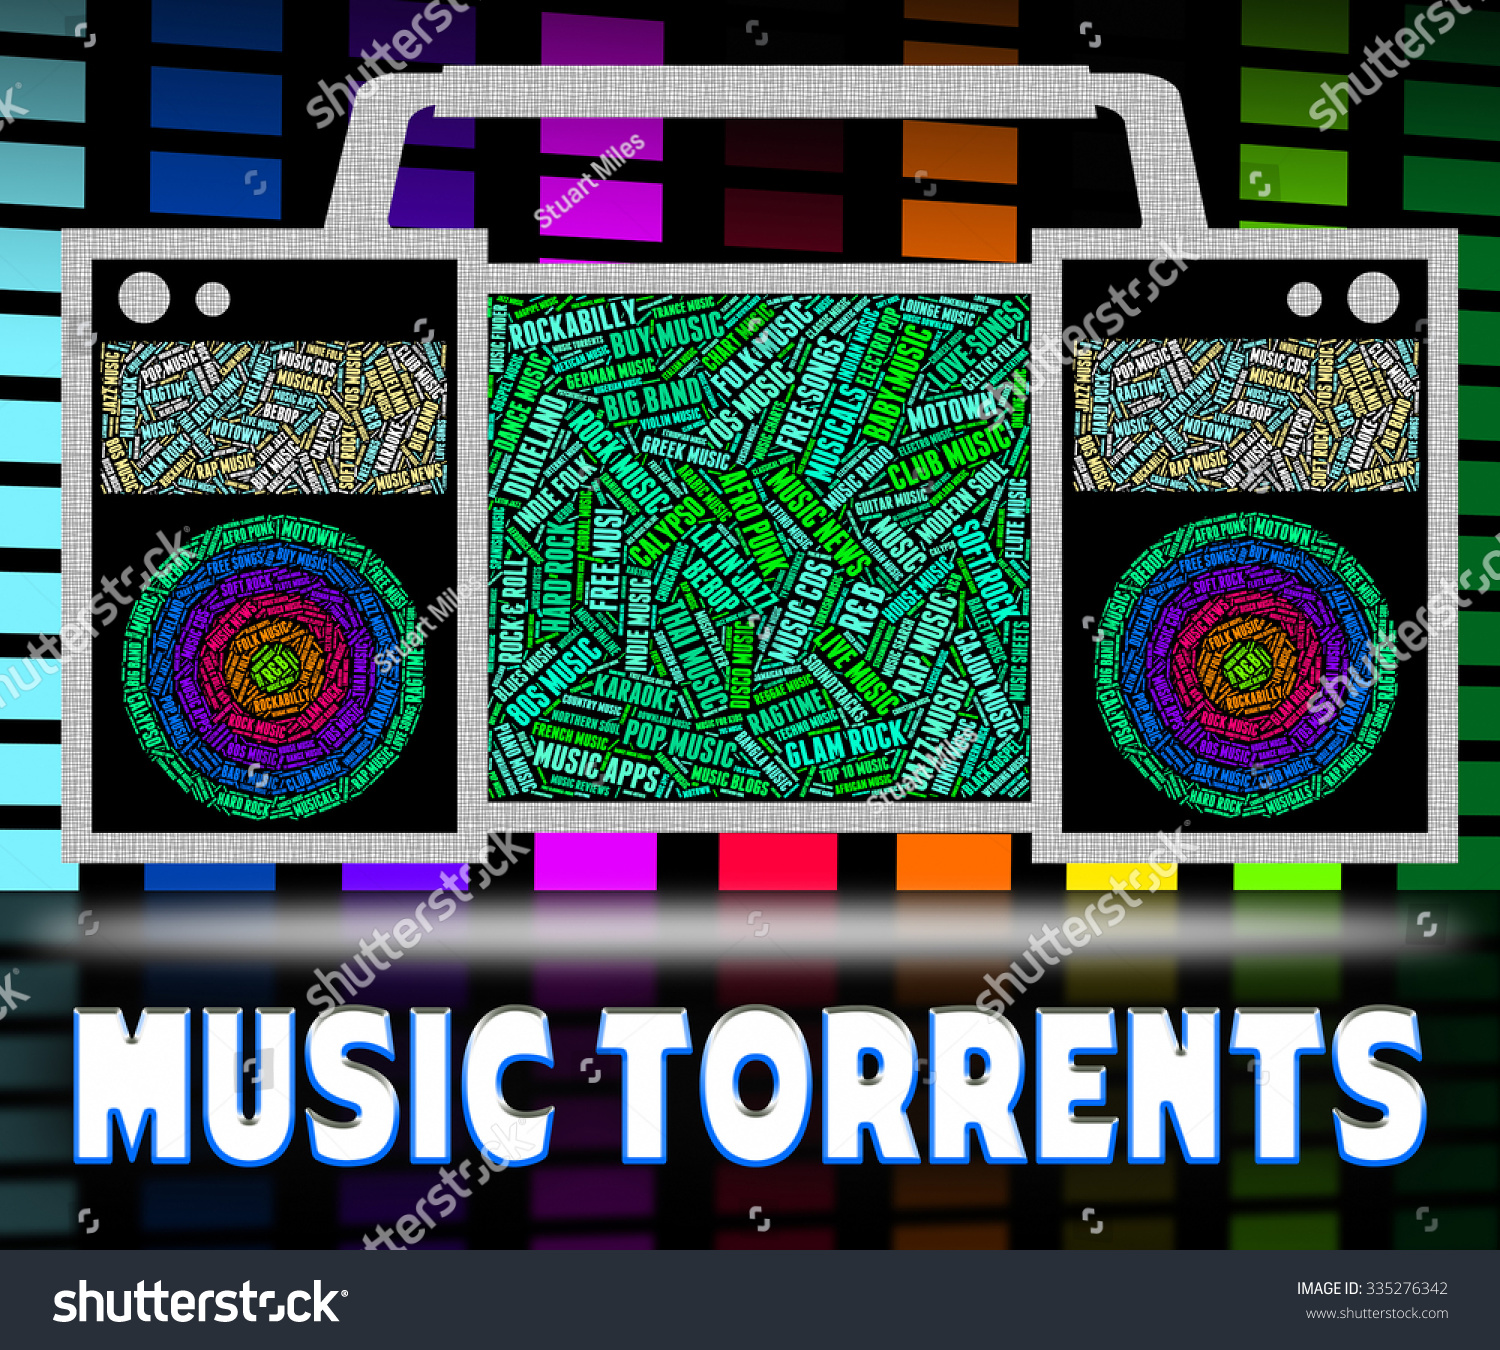 online music sharing Music sharing technology has triggered, little research exists on the effect that digital music sampling has on subsequent music sales 6 a substantially larger body of research has examined the related problem of software piracy.